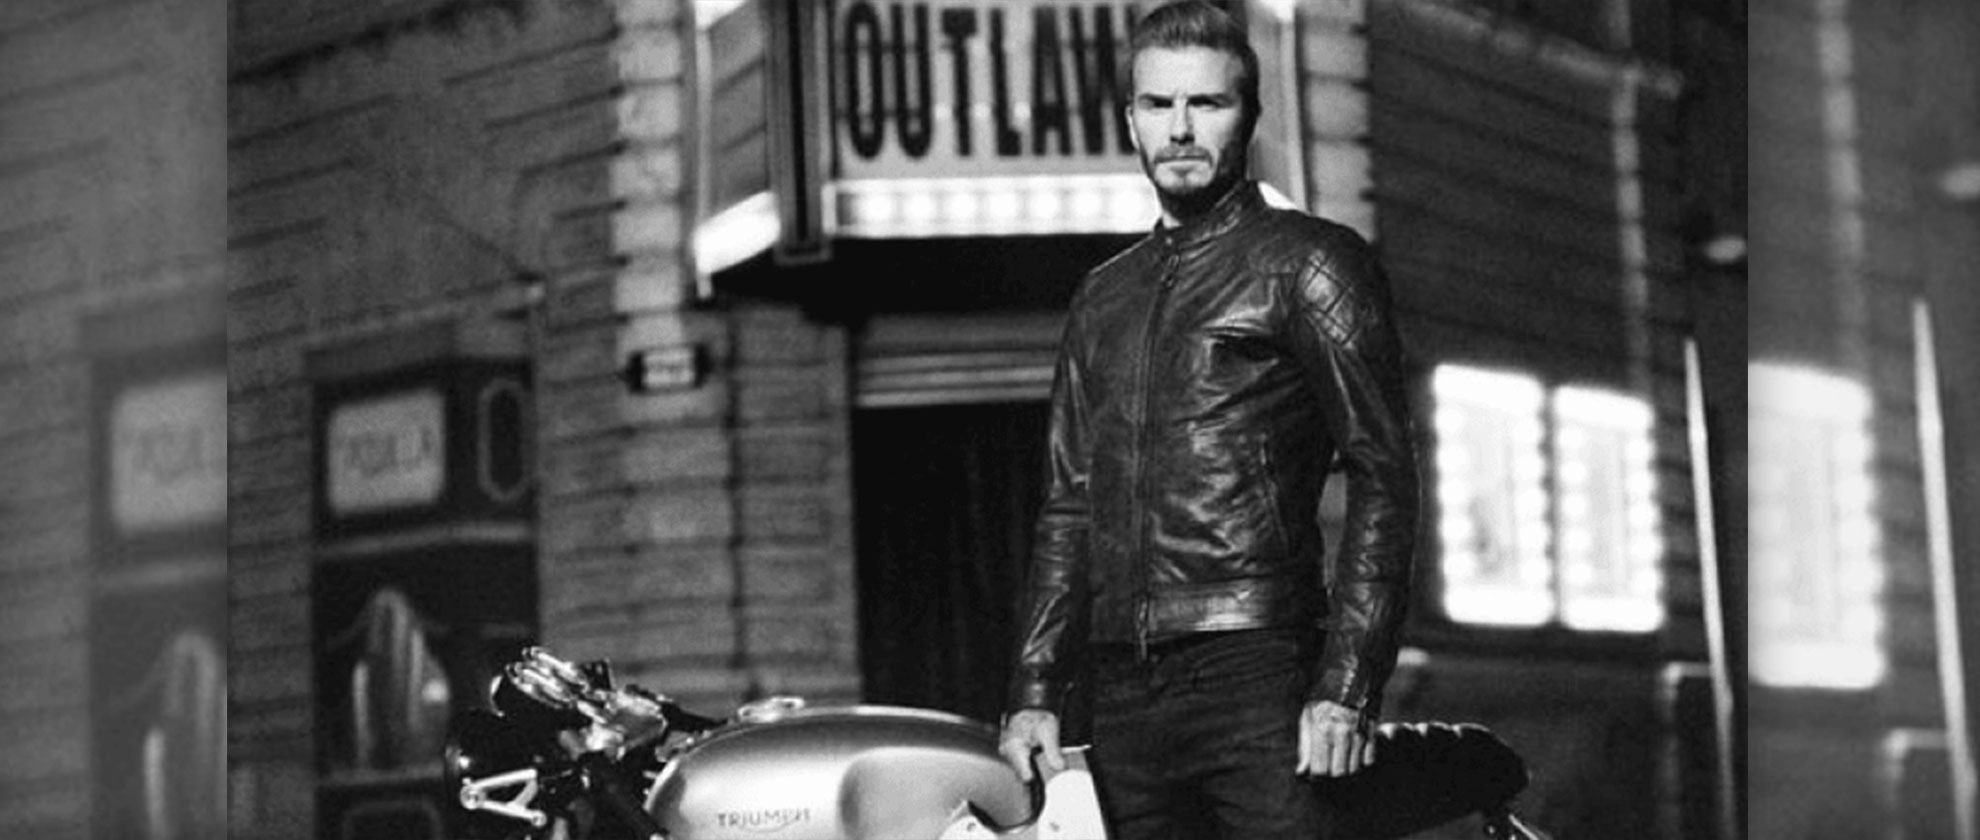 David Beckham Wears Belstaff Outlaws Jacket in Short Film